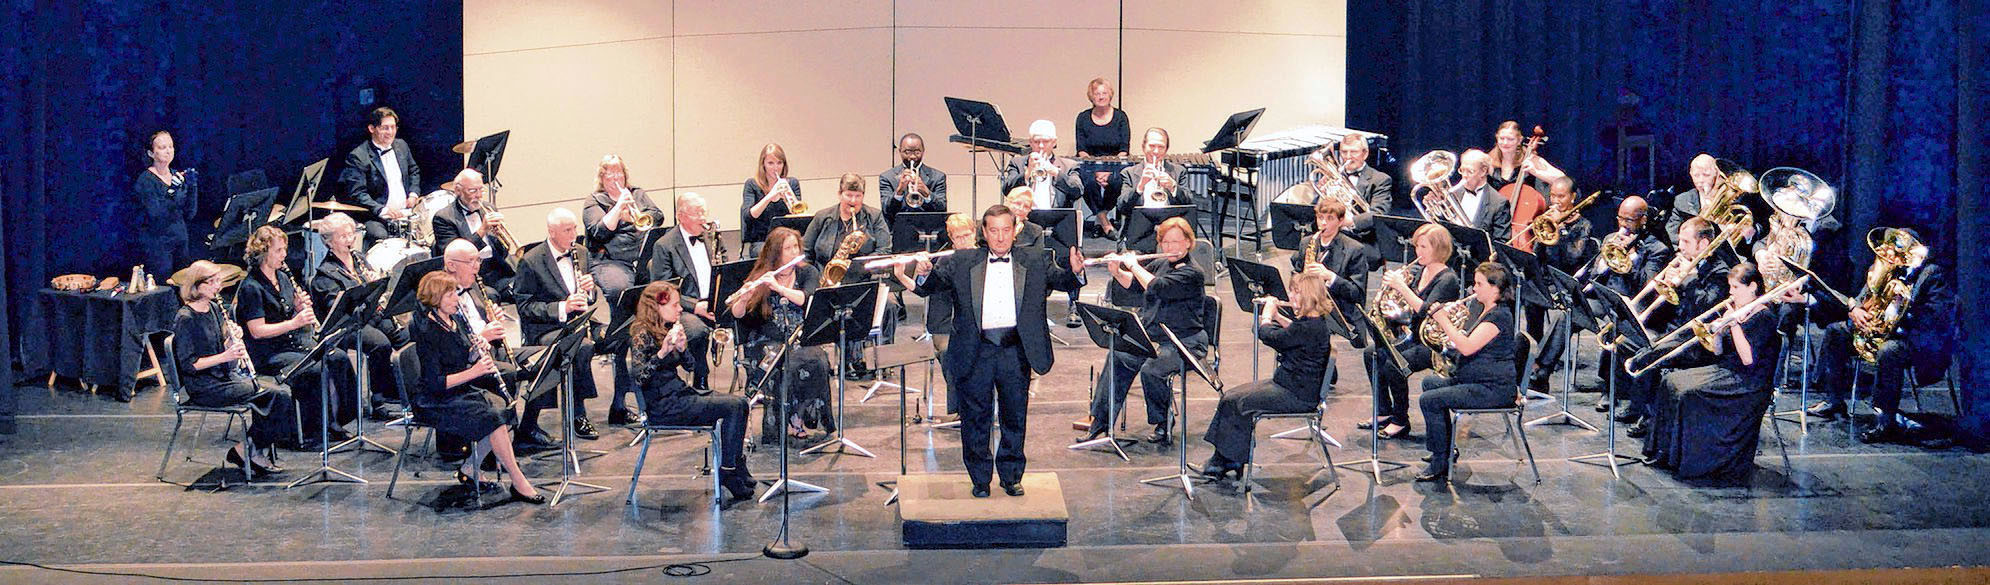 "The Sumter Community Concert Band, directed by James H. ""Jimmy"" Mills, front center, will present its fall concert at 3 p.m. Sunday at Patriot Hall. Admission is free, and the public is invited to attend."